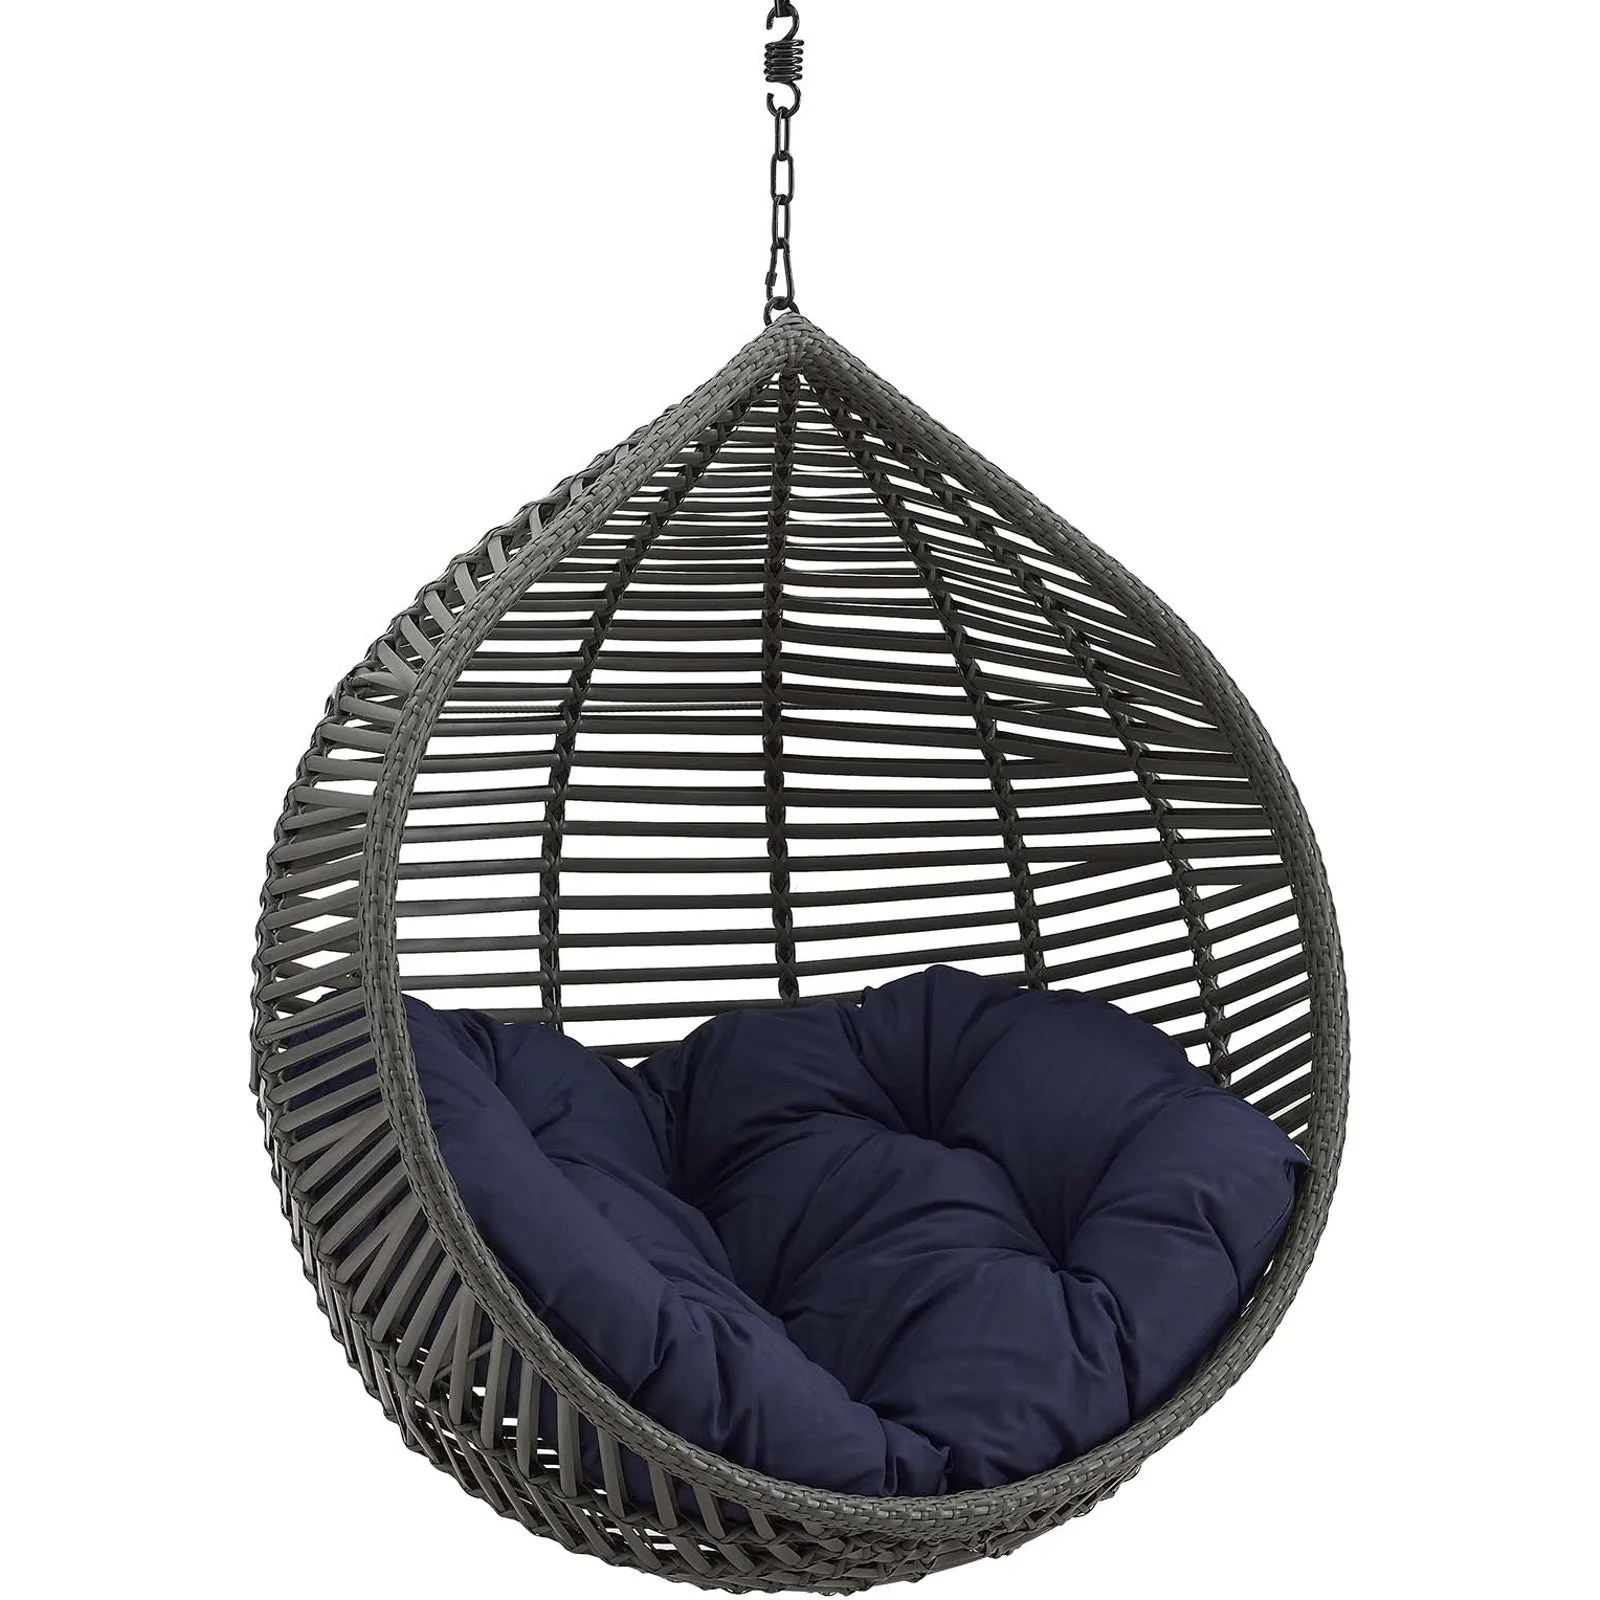 garner teardrop outdoor patio swing chair without stand gray navy